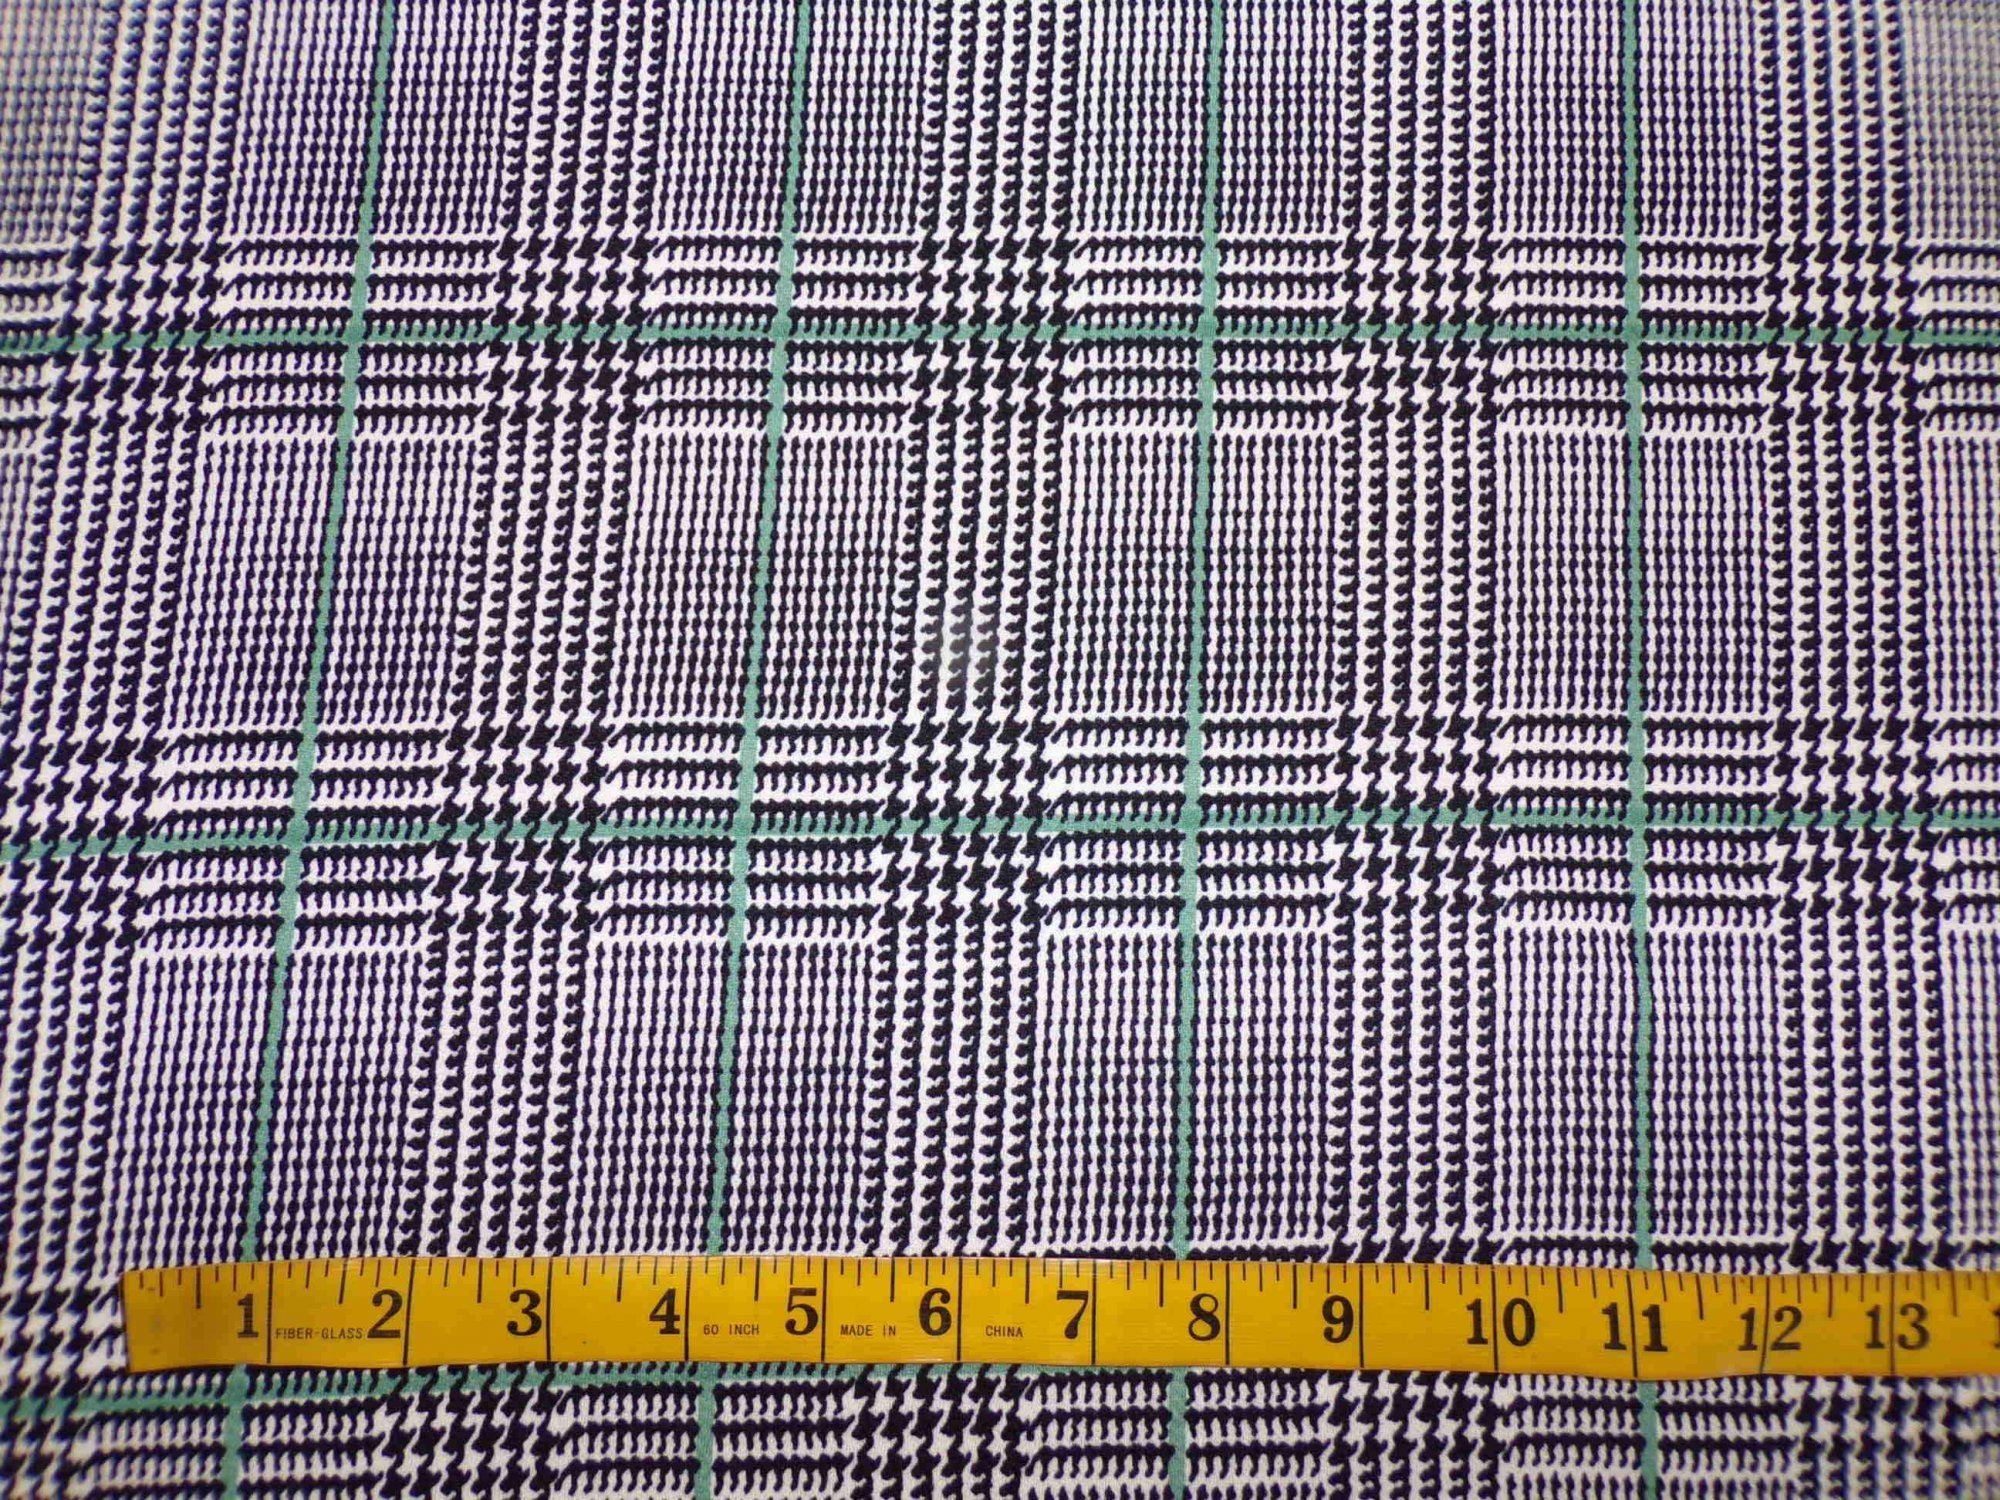 Liverpool Knit - Houndstooth Plaid Teal